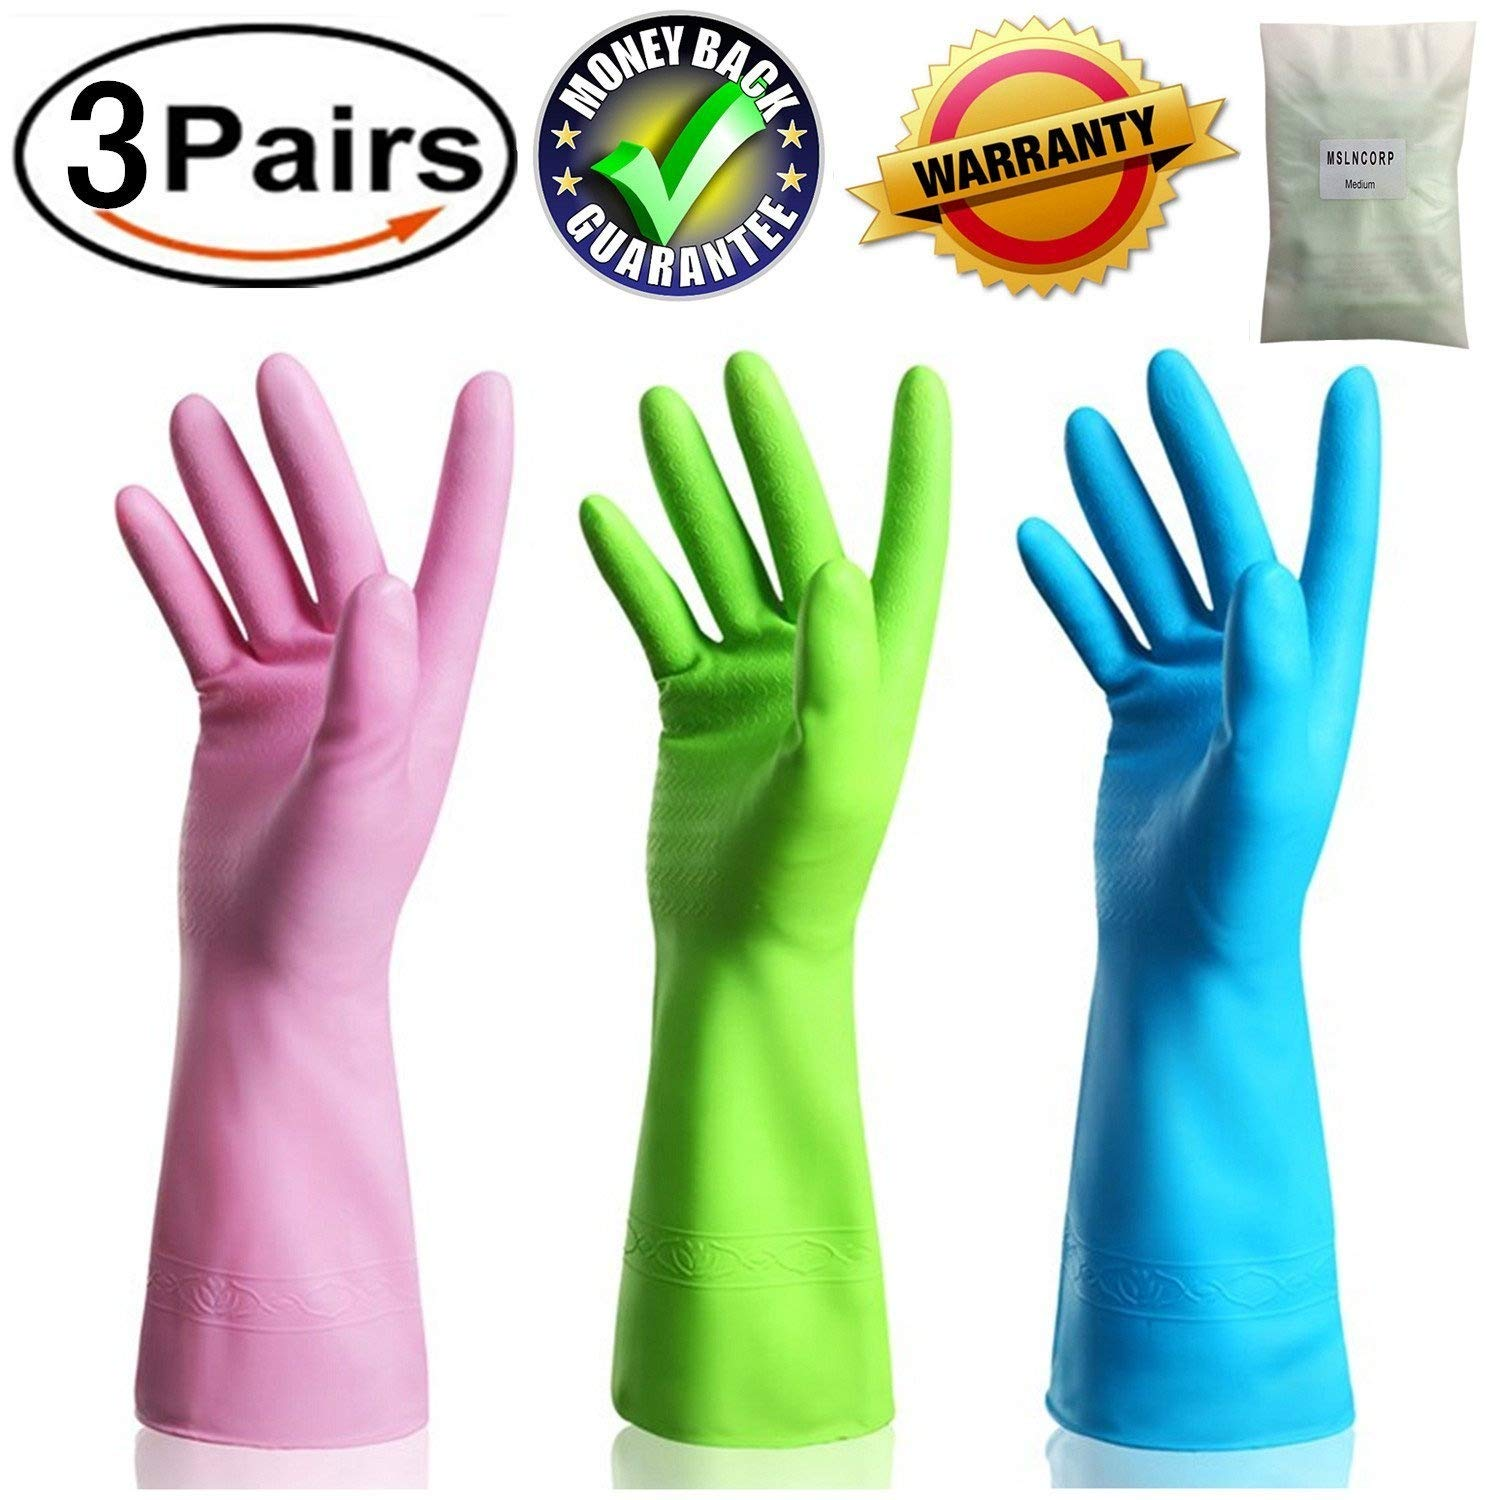 Kitchen Rubber Cleaning Gloves Dishwashing Clean Latex Glove Reusable with Household Powder Free (3 Pairs Medium) MSLNCORP